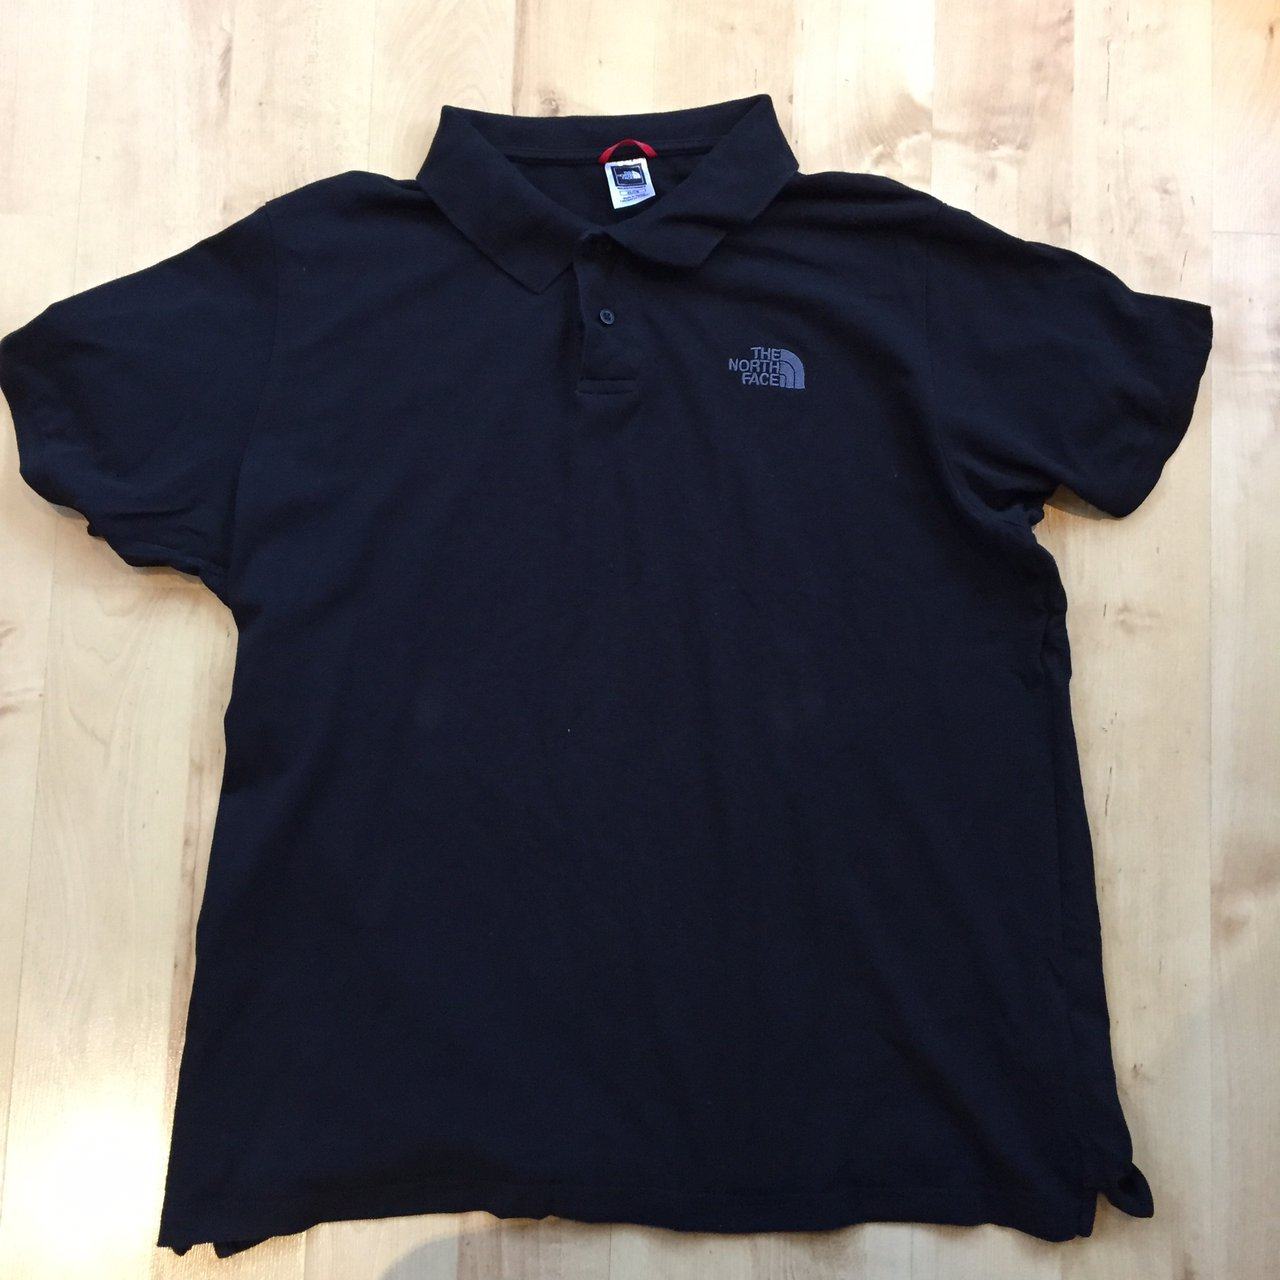 Mens The North Face 2 Button polo shirt in black Size - Depop e5190c6bf